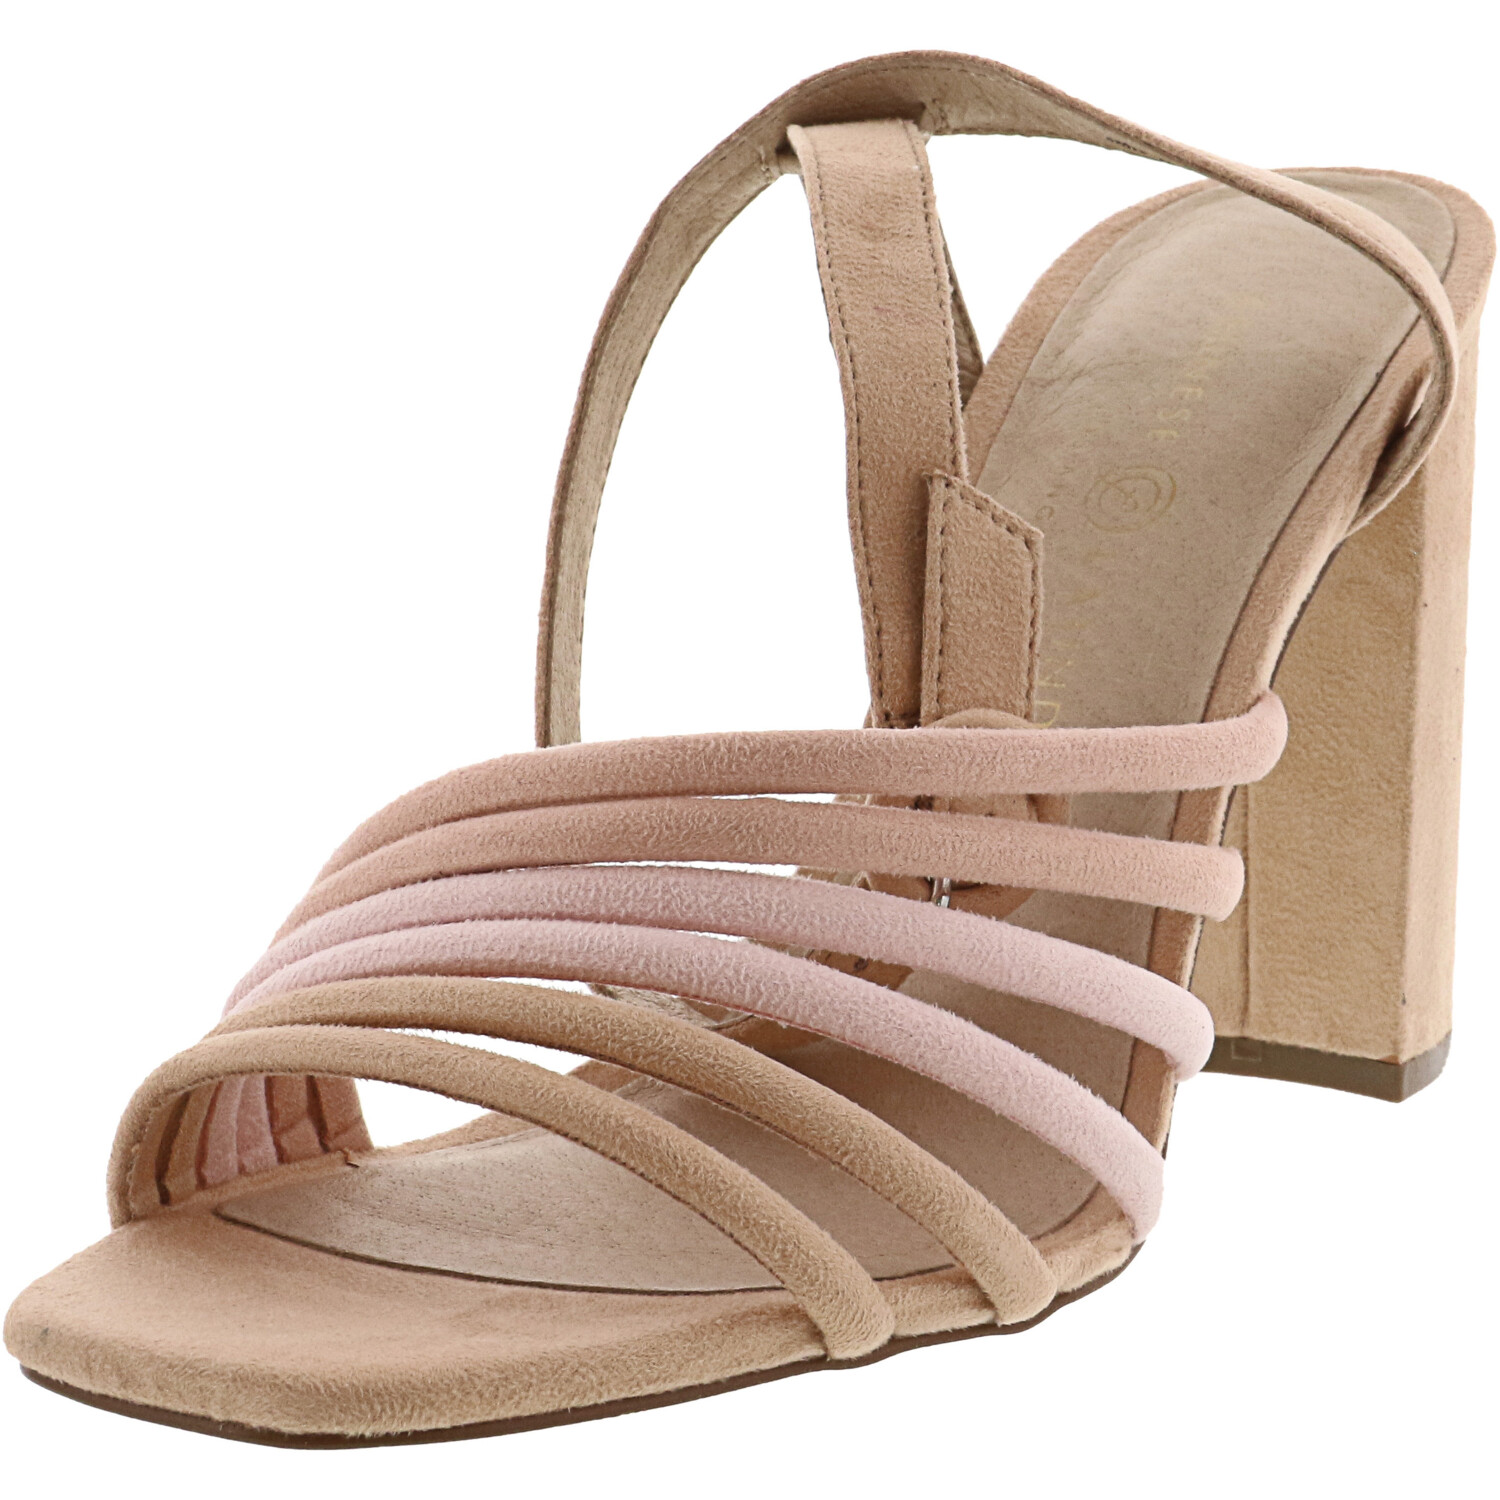 Chinese Laundry Women's Jonah Suede Blush Multi Ankle-High Heel - 9M